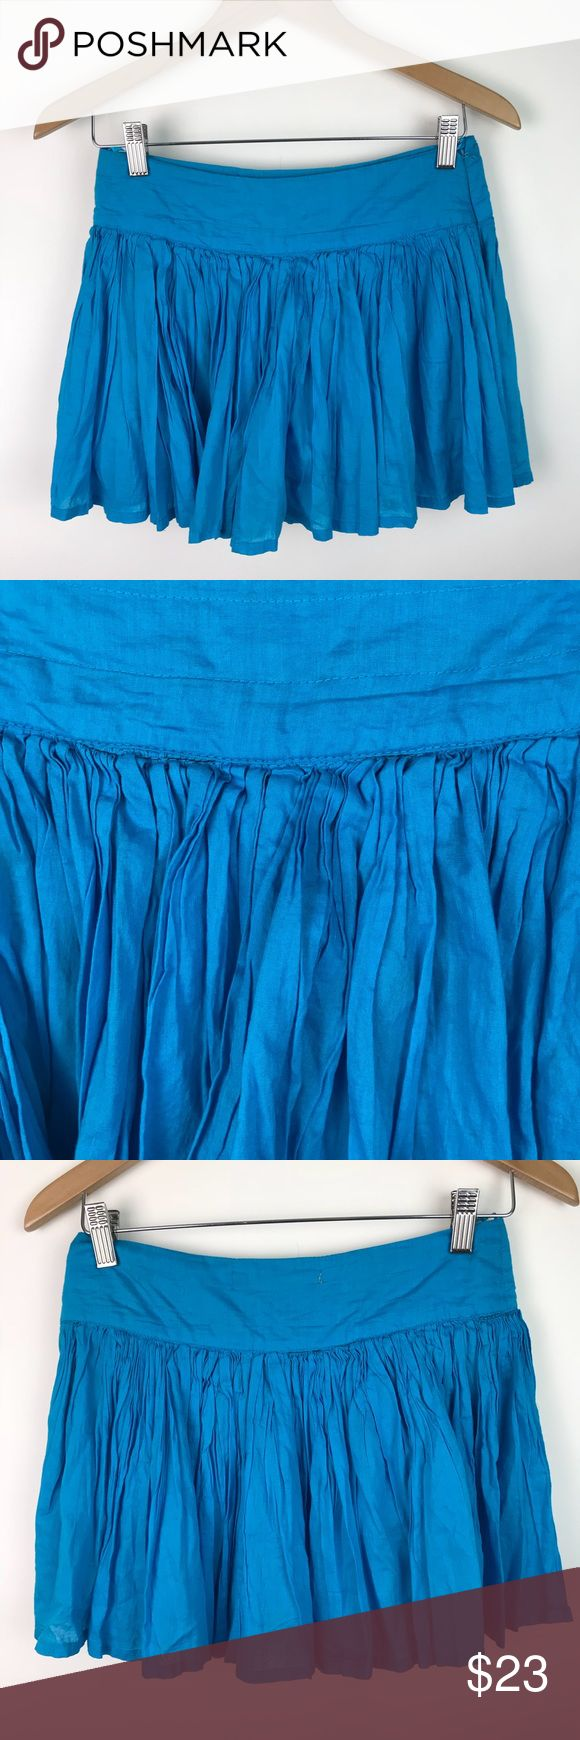 """ZARA TRF Mini Skirt Layered Full Cotton 2 AJ66 Zara TRF Womens Flared Mini Skirt Layered Full Turquoise Sz 2 AJ66 VGUC...NO stains holes rips or pilling  Summer Wardrobe Staple! This sweet mini skirt by popular ZARA features a 100% cotton textile in a gorgeous turquoise hue, with a flat waist, side zip, full skirting with cotton underwater for extra fullness.  Waist: 14"""" Hips: 17.5"""" Waist to Hem: 13.5"""" * measurements are taken laying flat and are APPROXIMATE  SMOKE FREE HOME Zara Skirts Mini"""